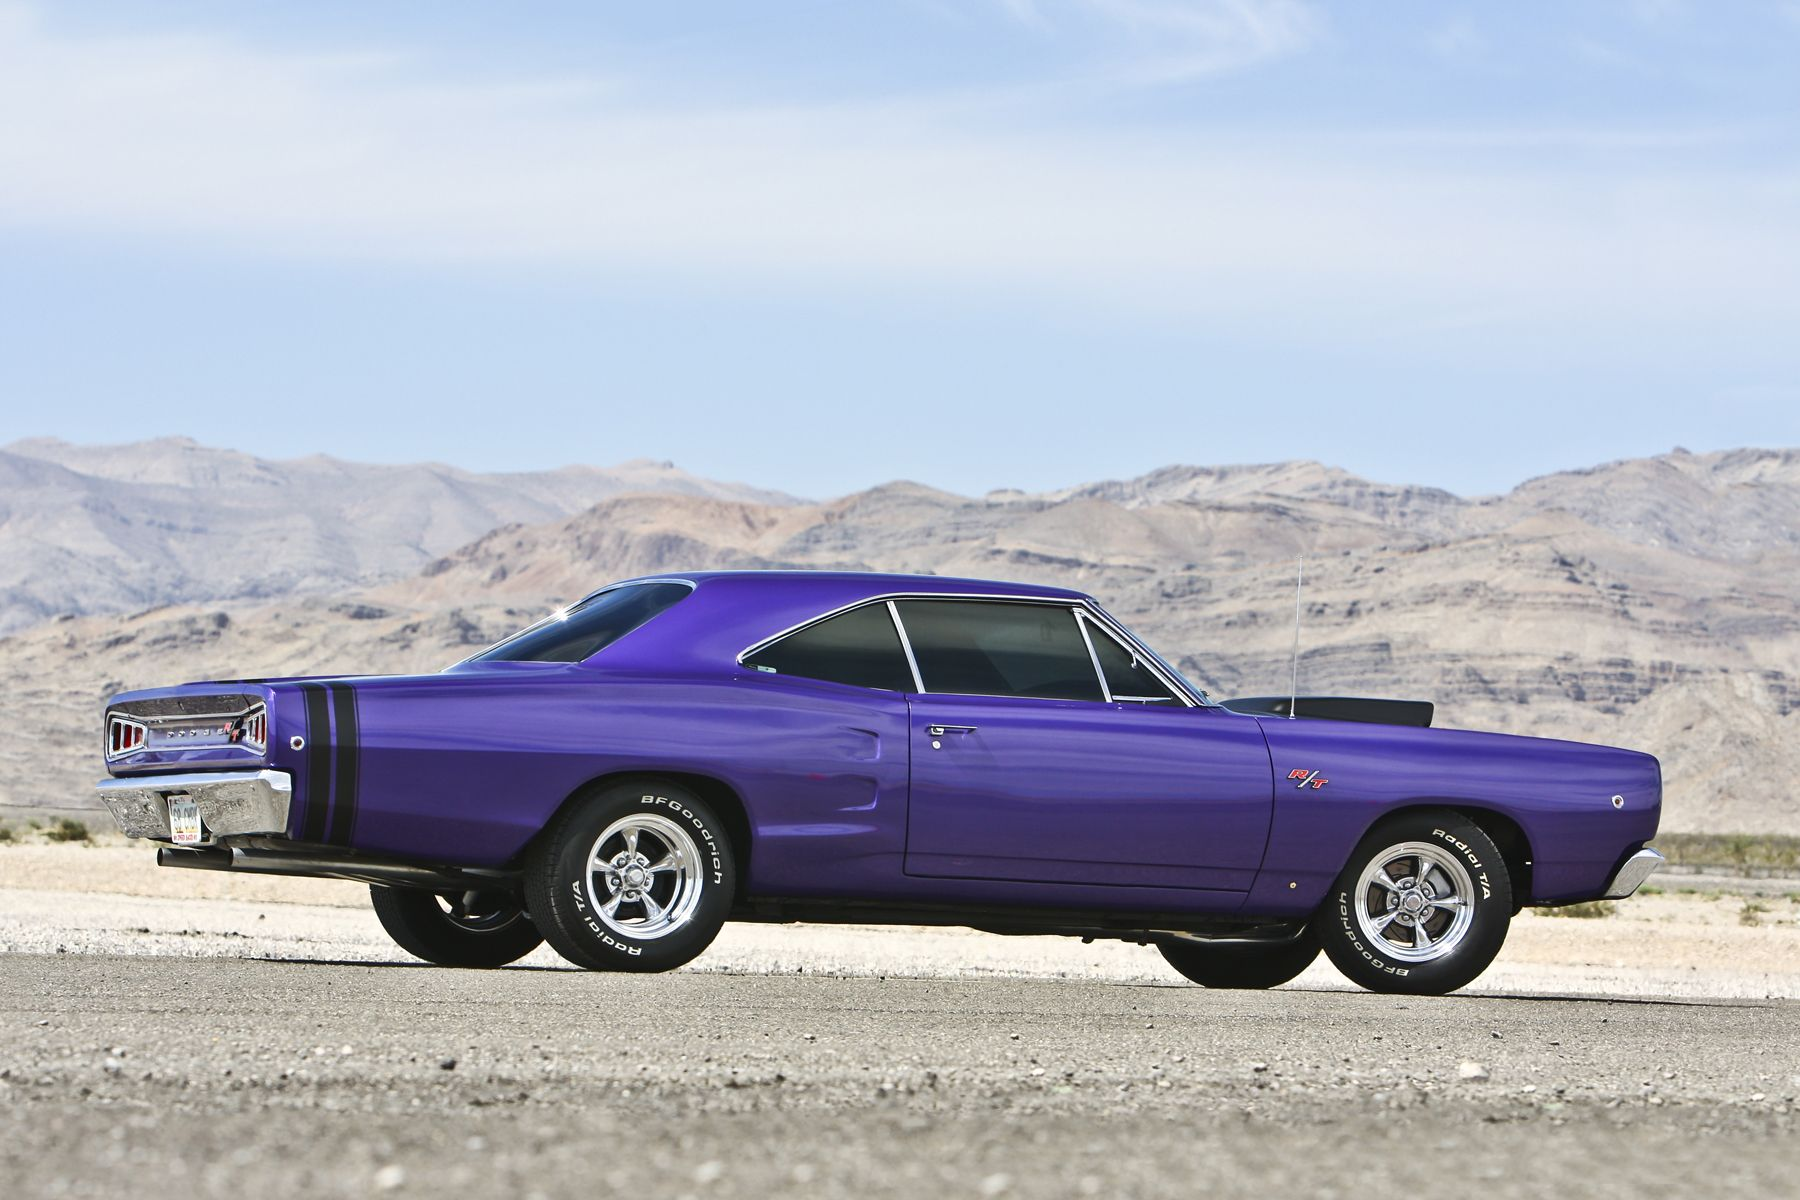 1969 Dodge R/T Queens, NY oil change & free tire